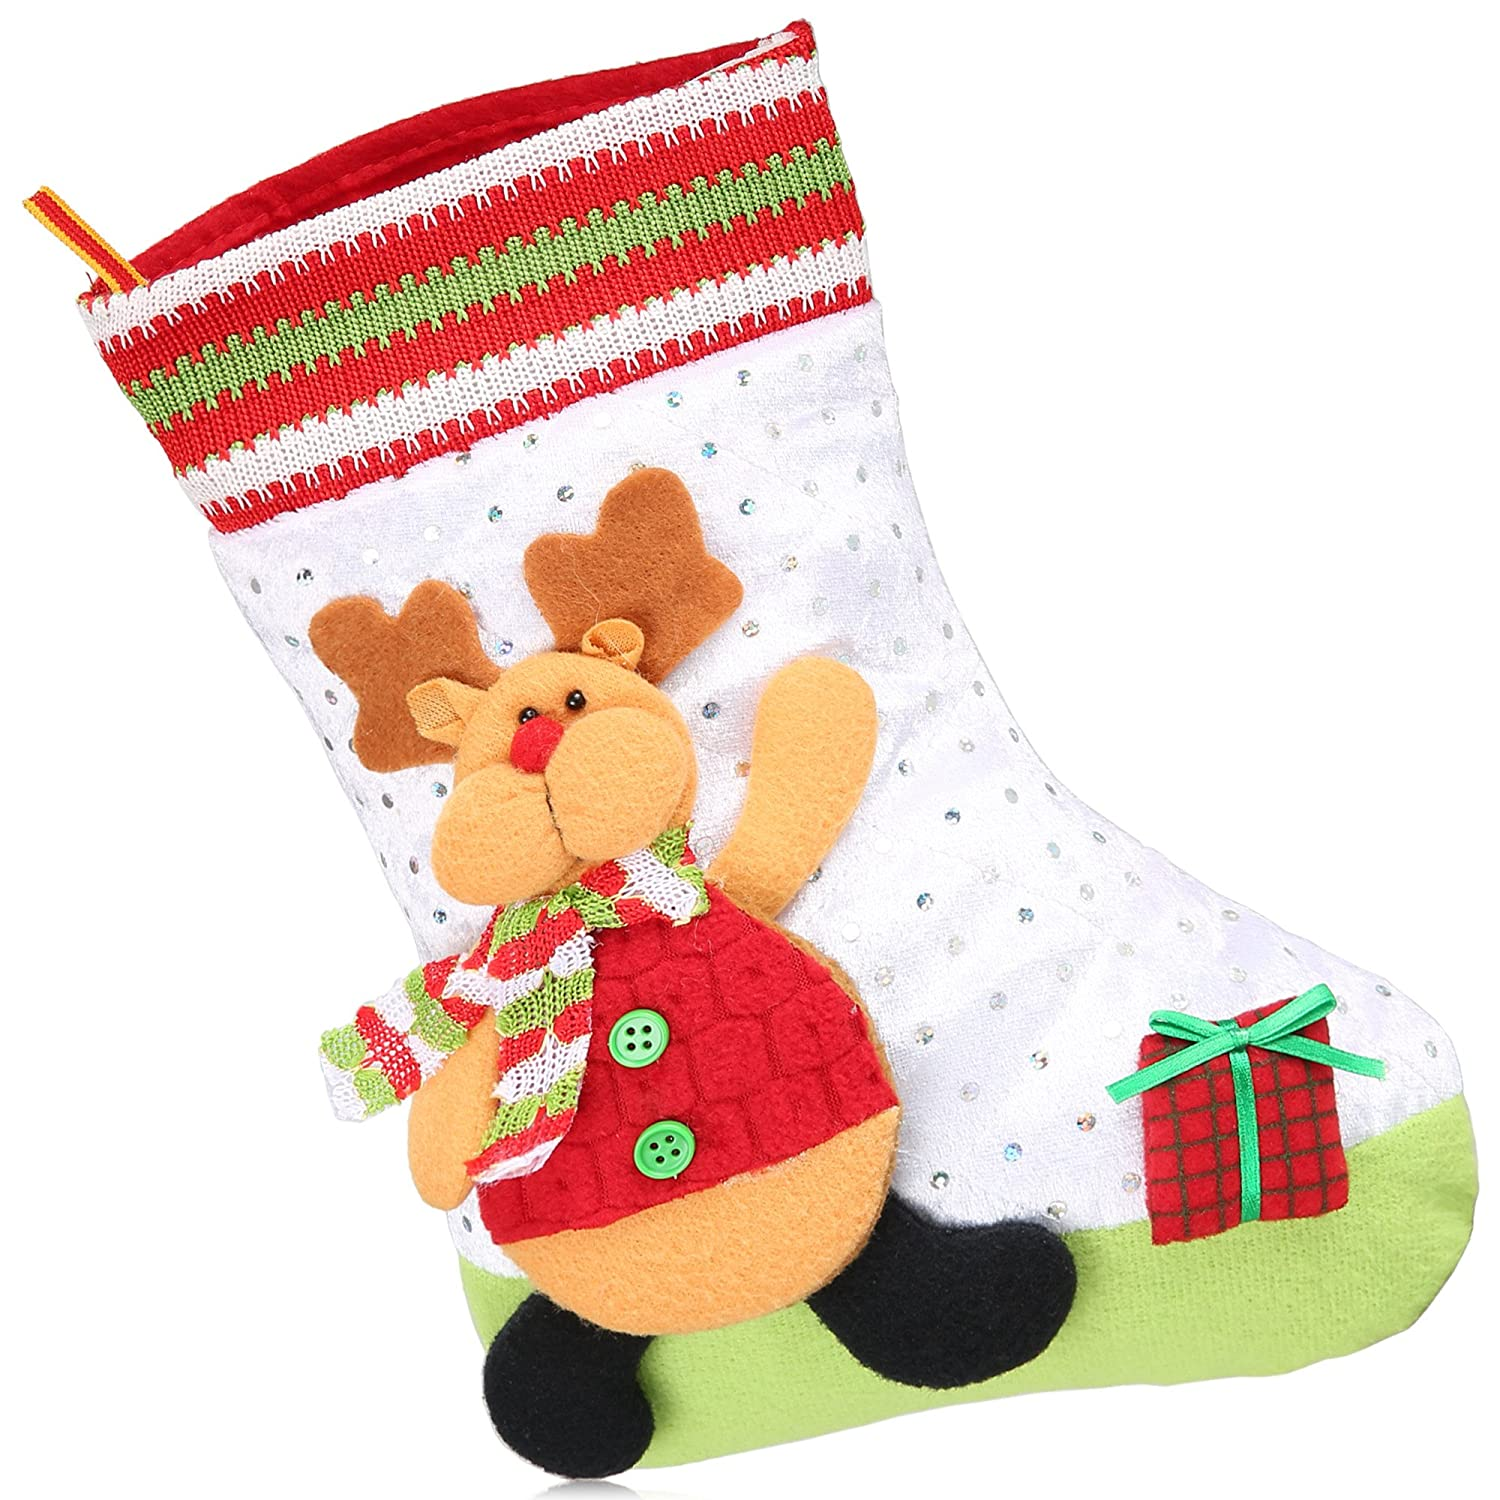 Teaio Baby Toddler Kids Socks Fashion Cute Holiday Decoration Christmas Gift Present Xmas Stocking